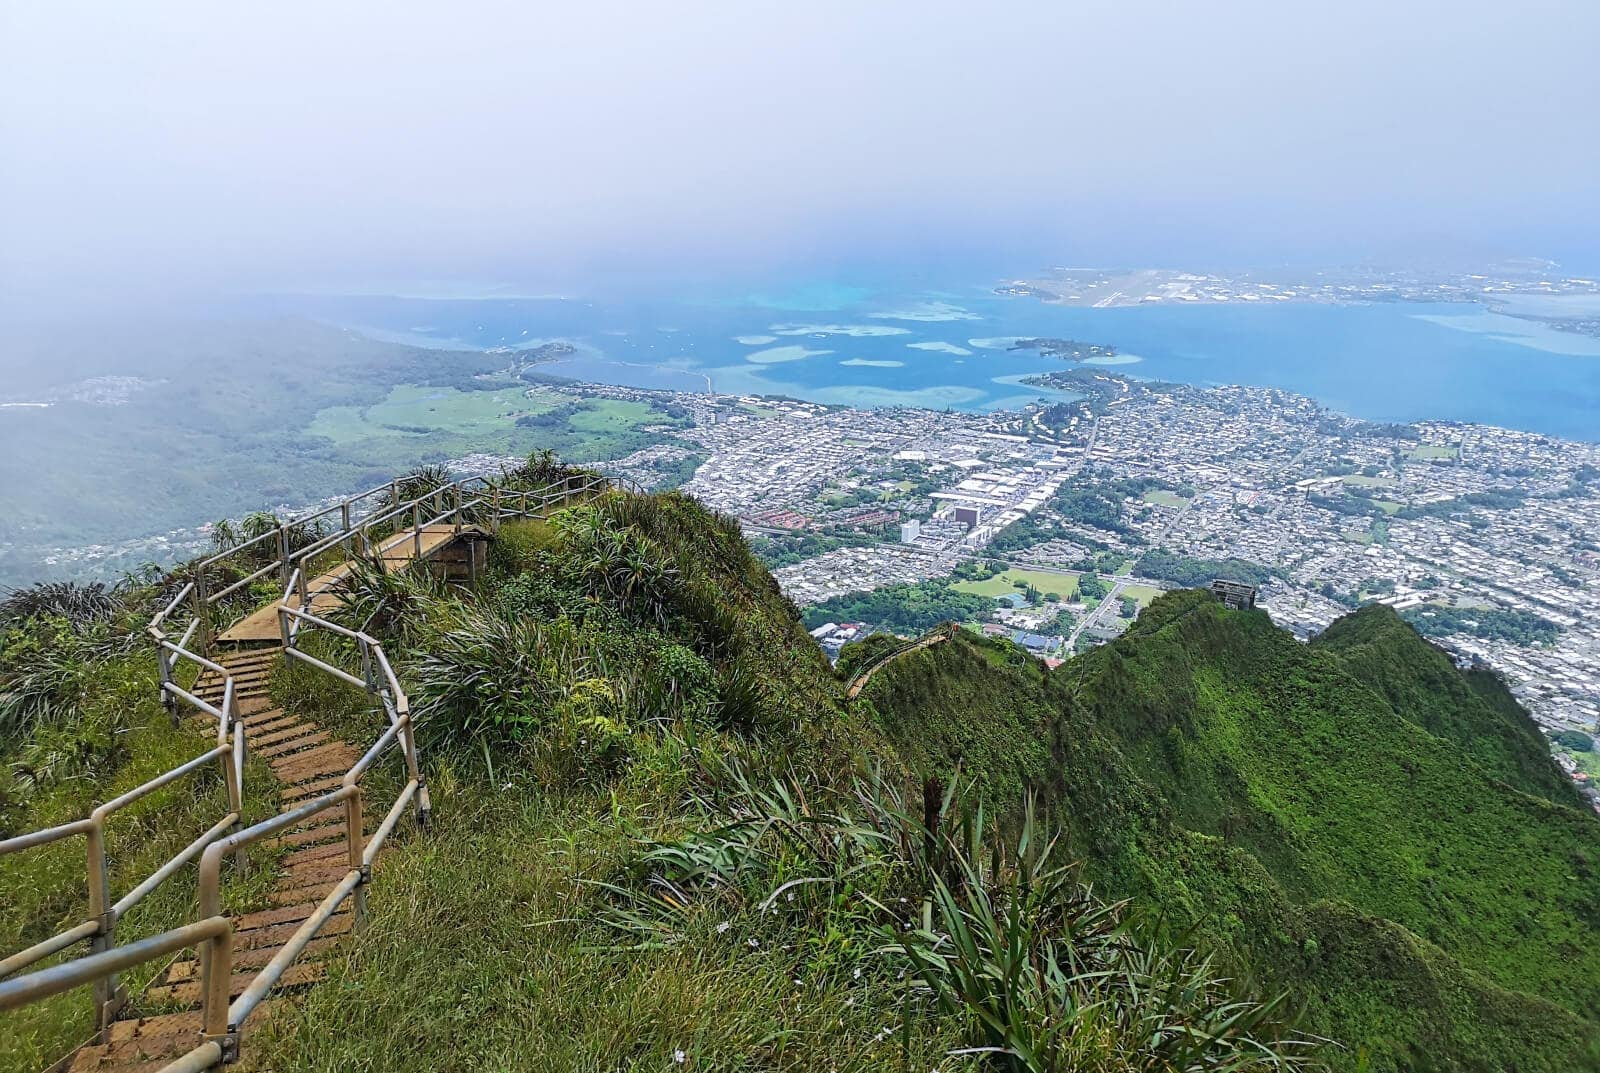 Travel bloggers reveal their most unforgettable travel experiences - Hiking the Stairway to Heaven on Oahu, Hawaii (the legal way)